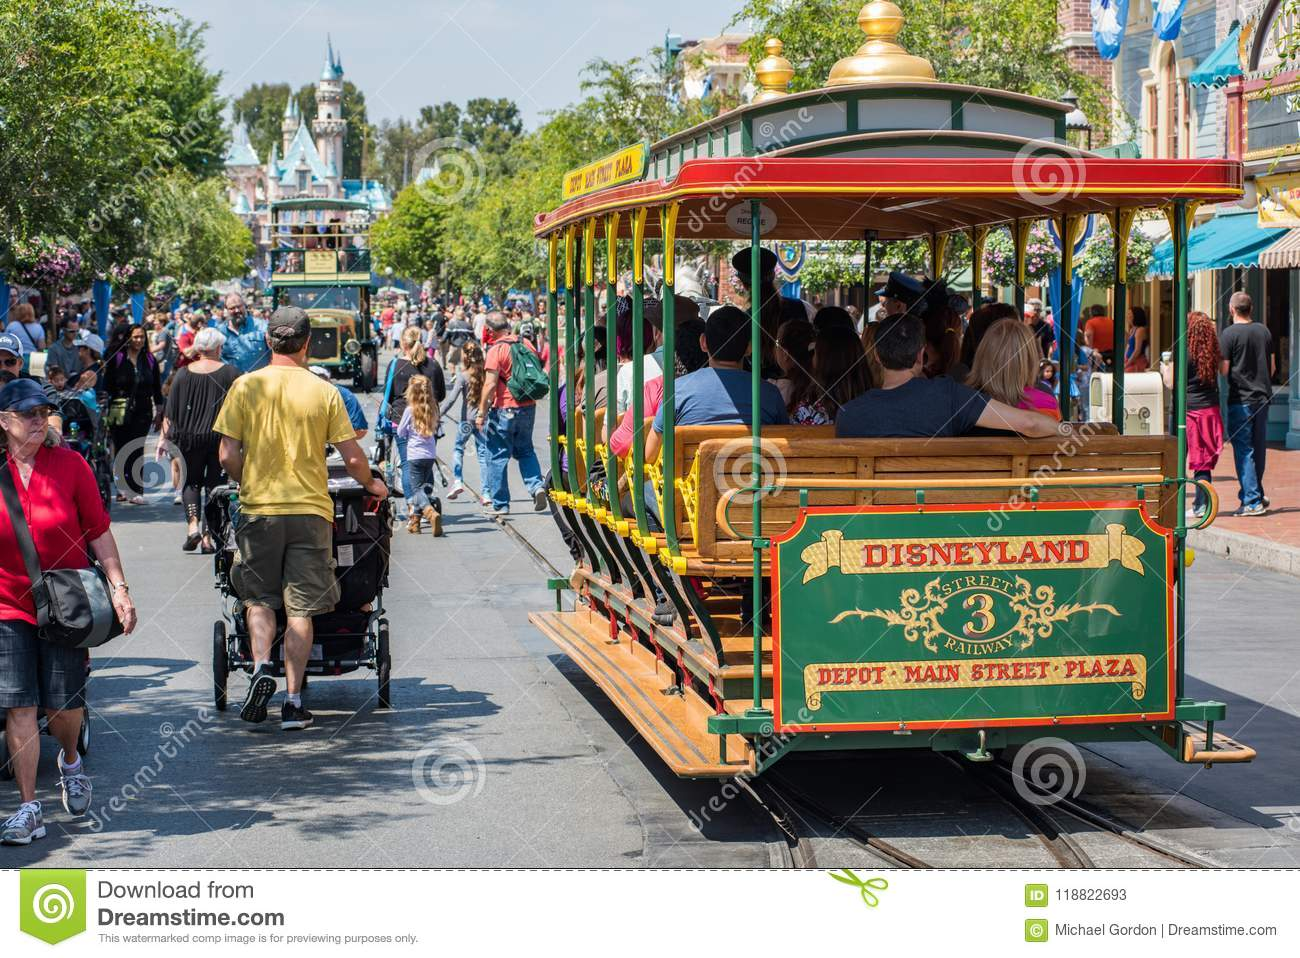 Disneyland in Anaheim, Kalifornien